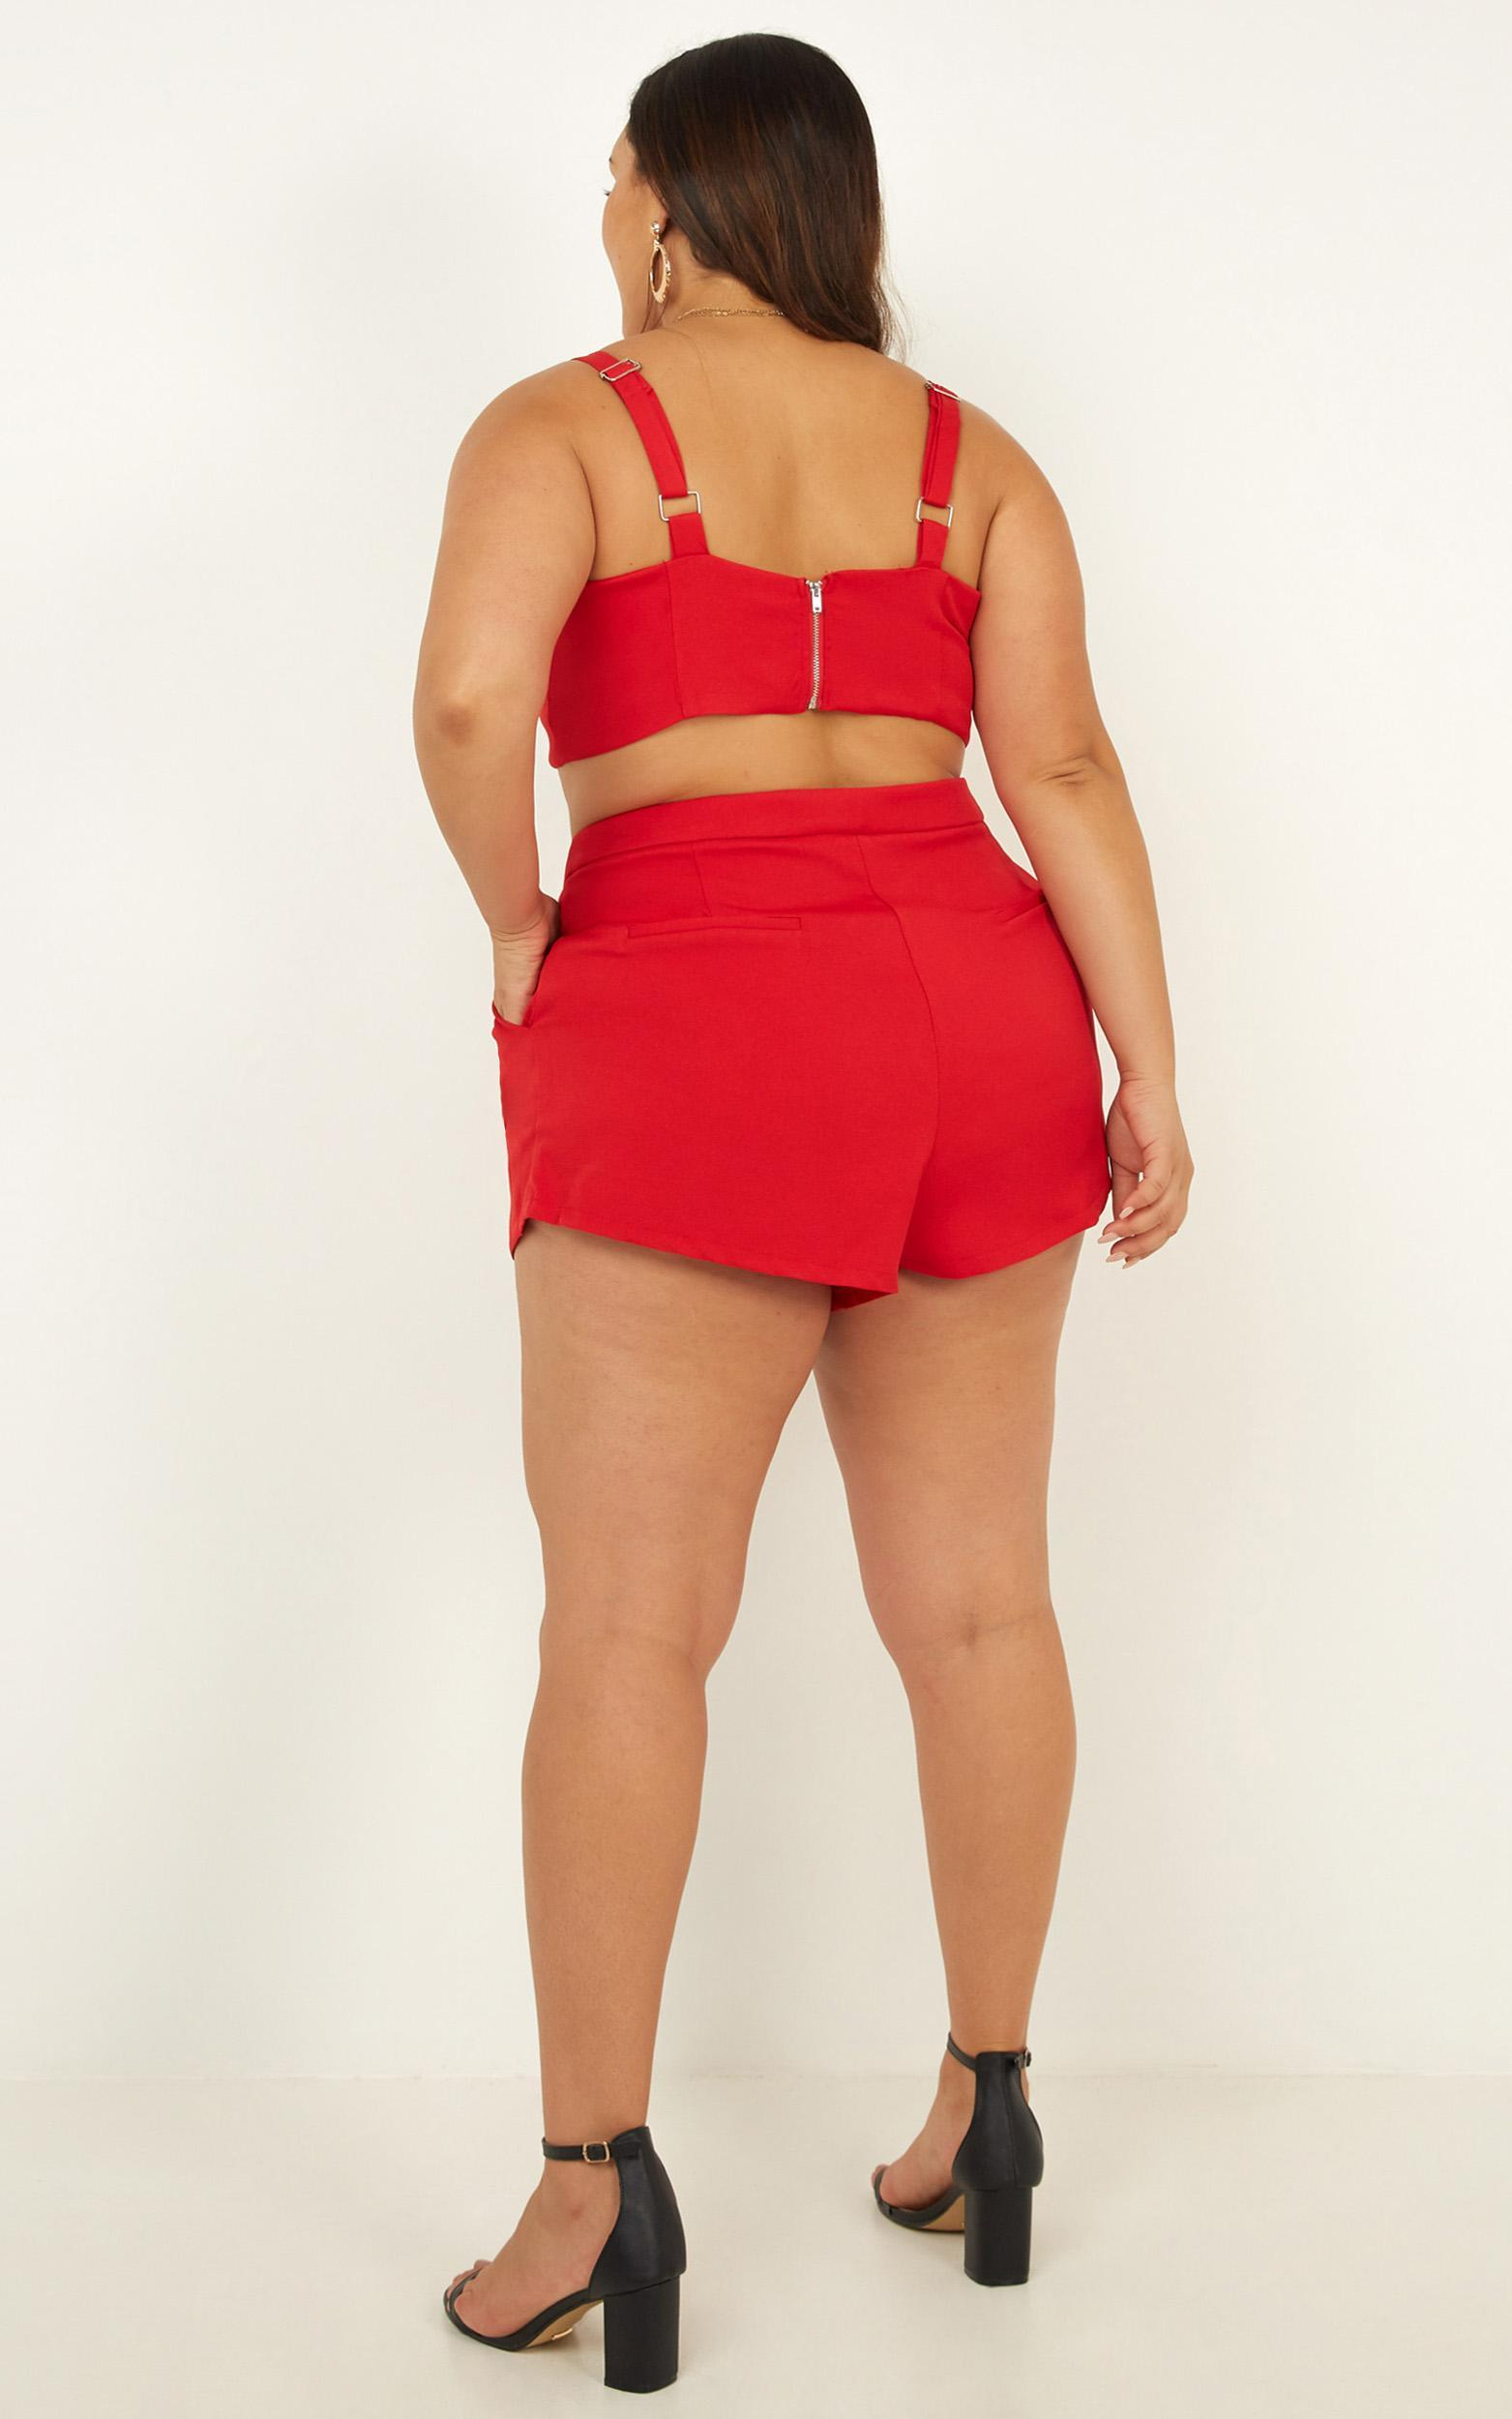 Forgot Me Two Piece Set In red - 20 (XXXXL), Red, hi-res image number null